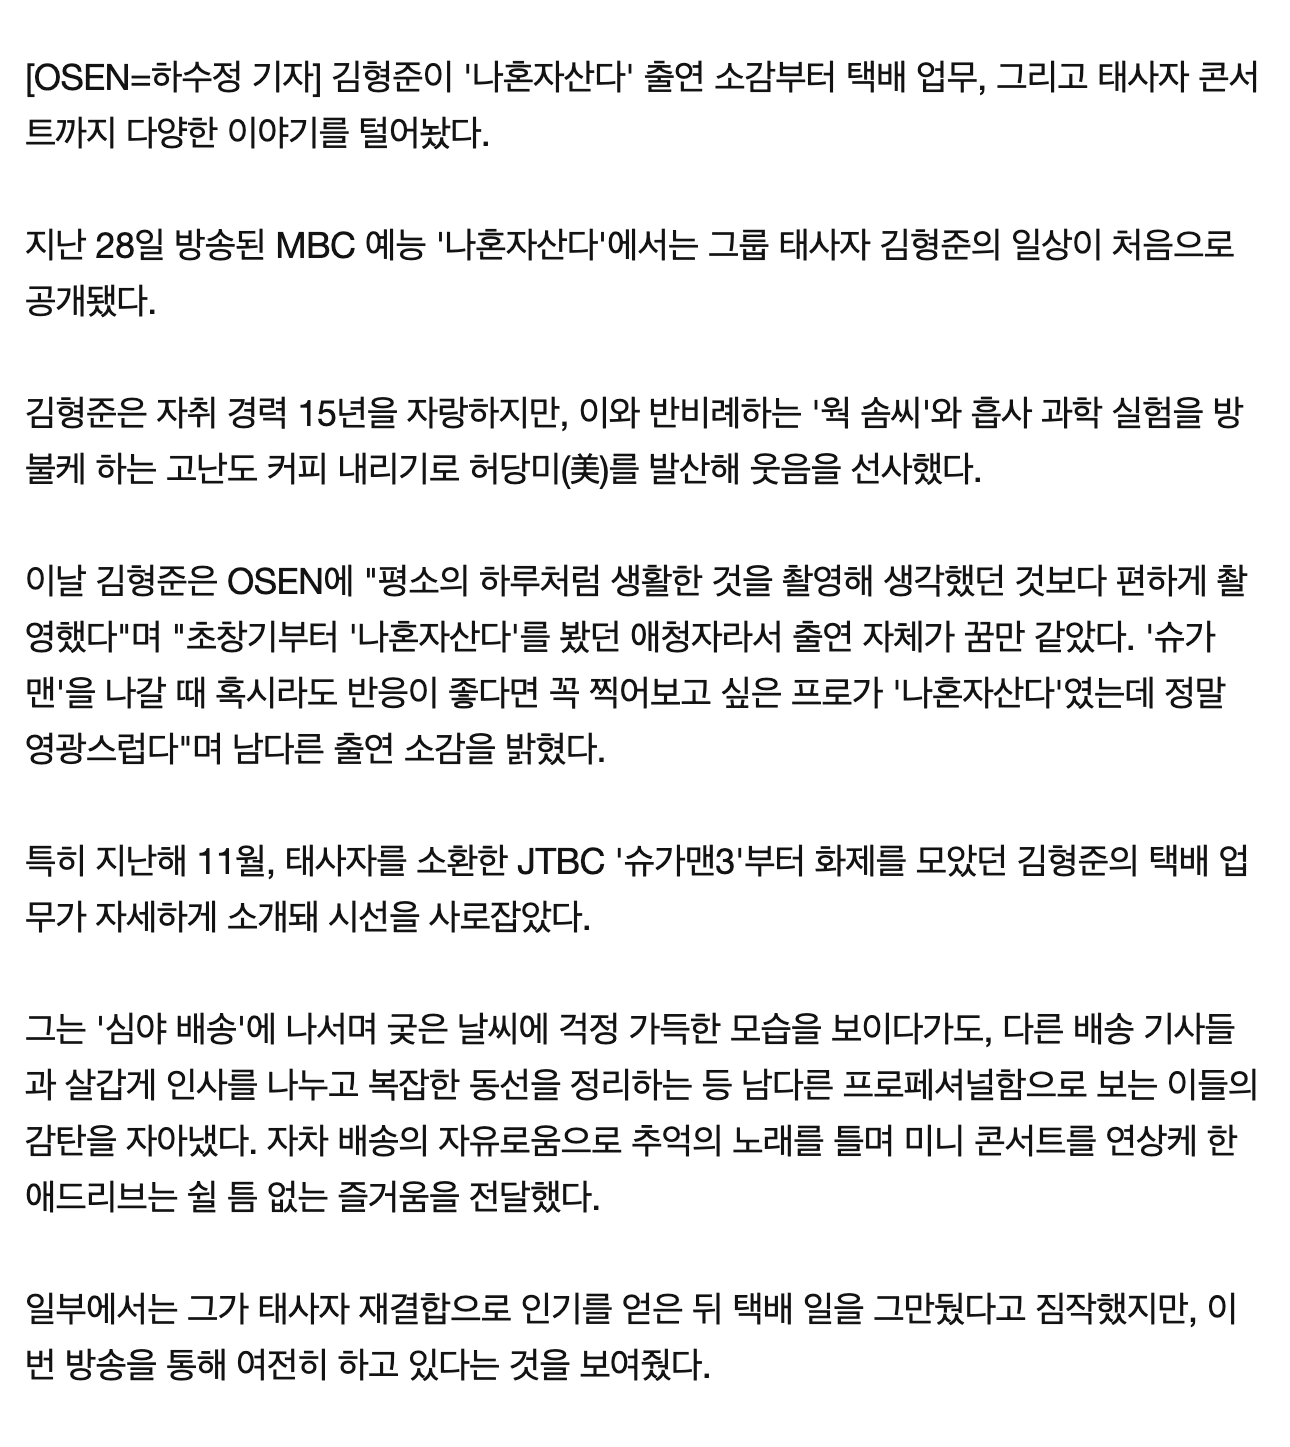 screencapture-n-news-naver-entertain-article-109-0004173935-2020-03-01-02_39_23-T2